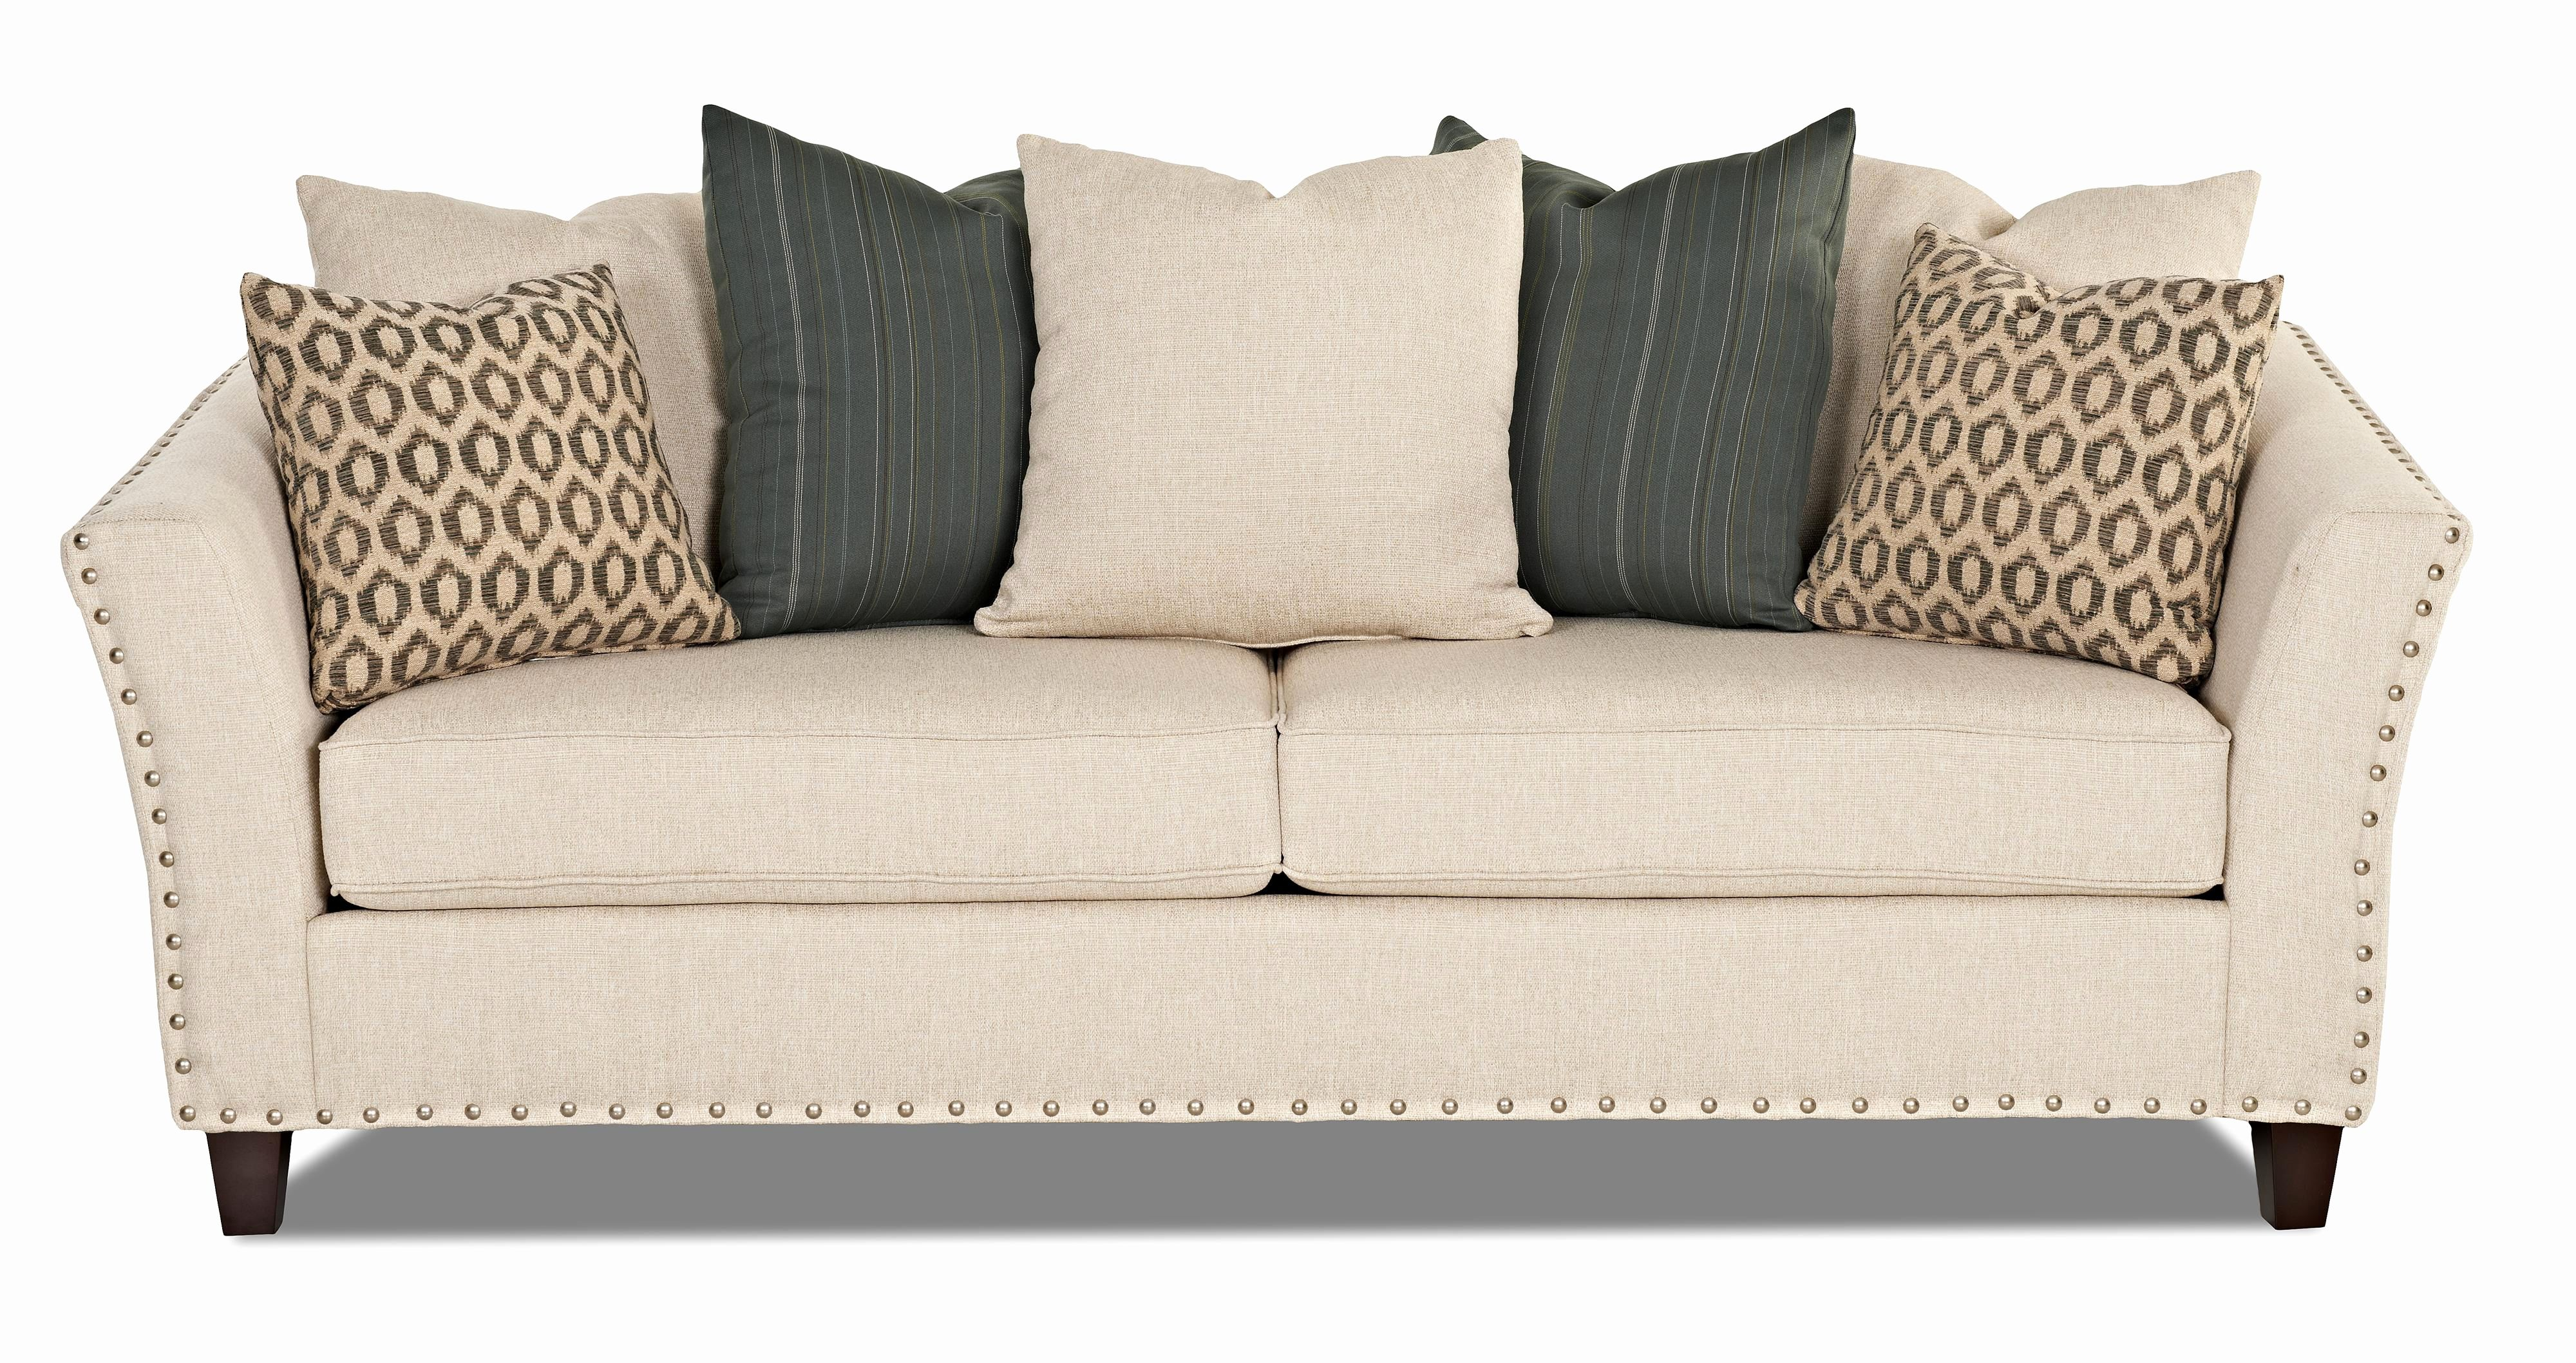 Awesome Nailhead Sleeper Sofa Shot With Trim Best As Pillows On Queen